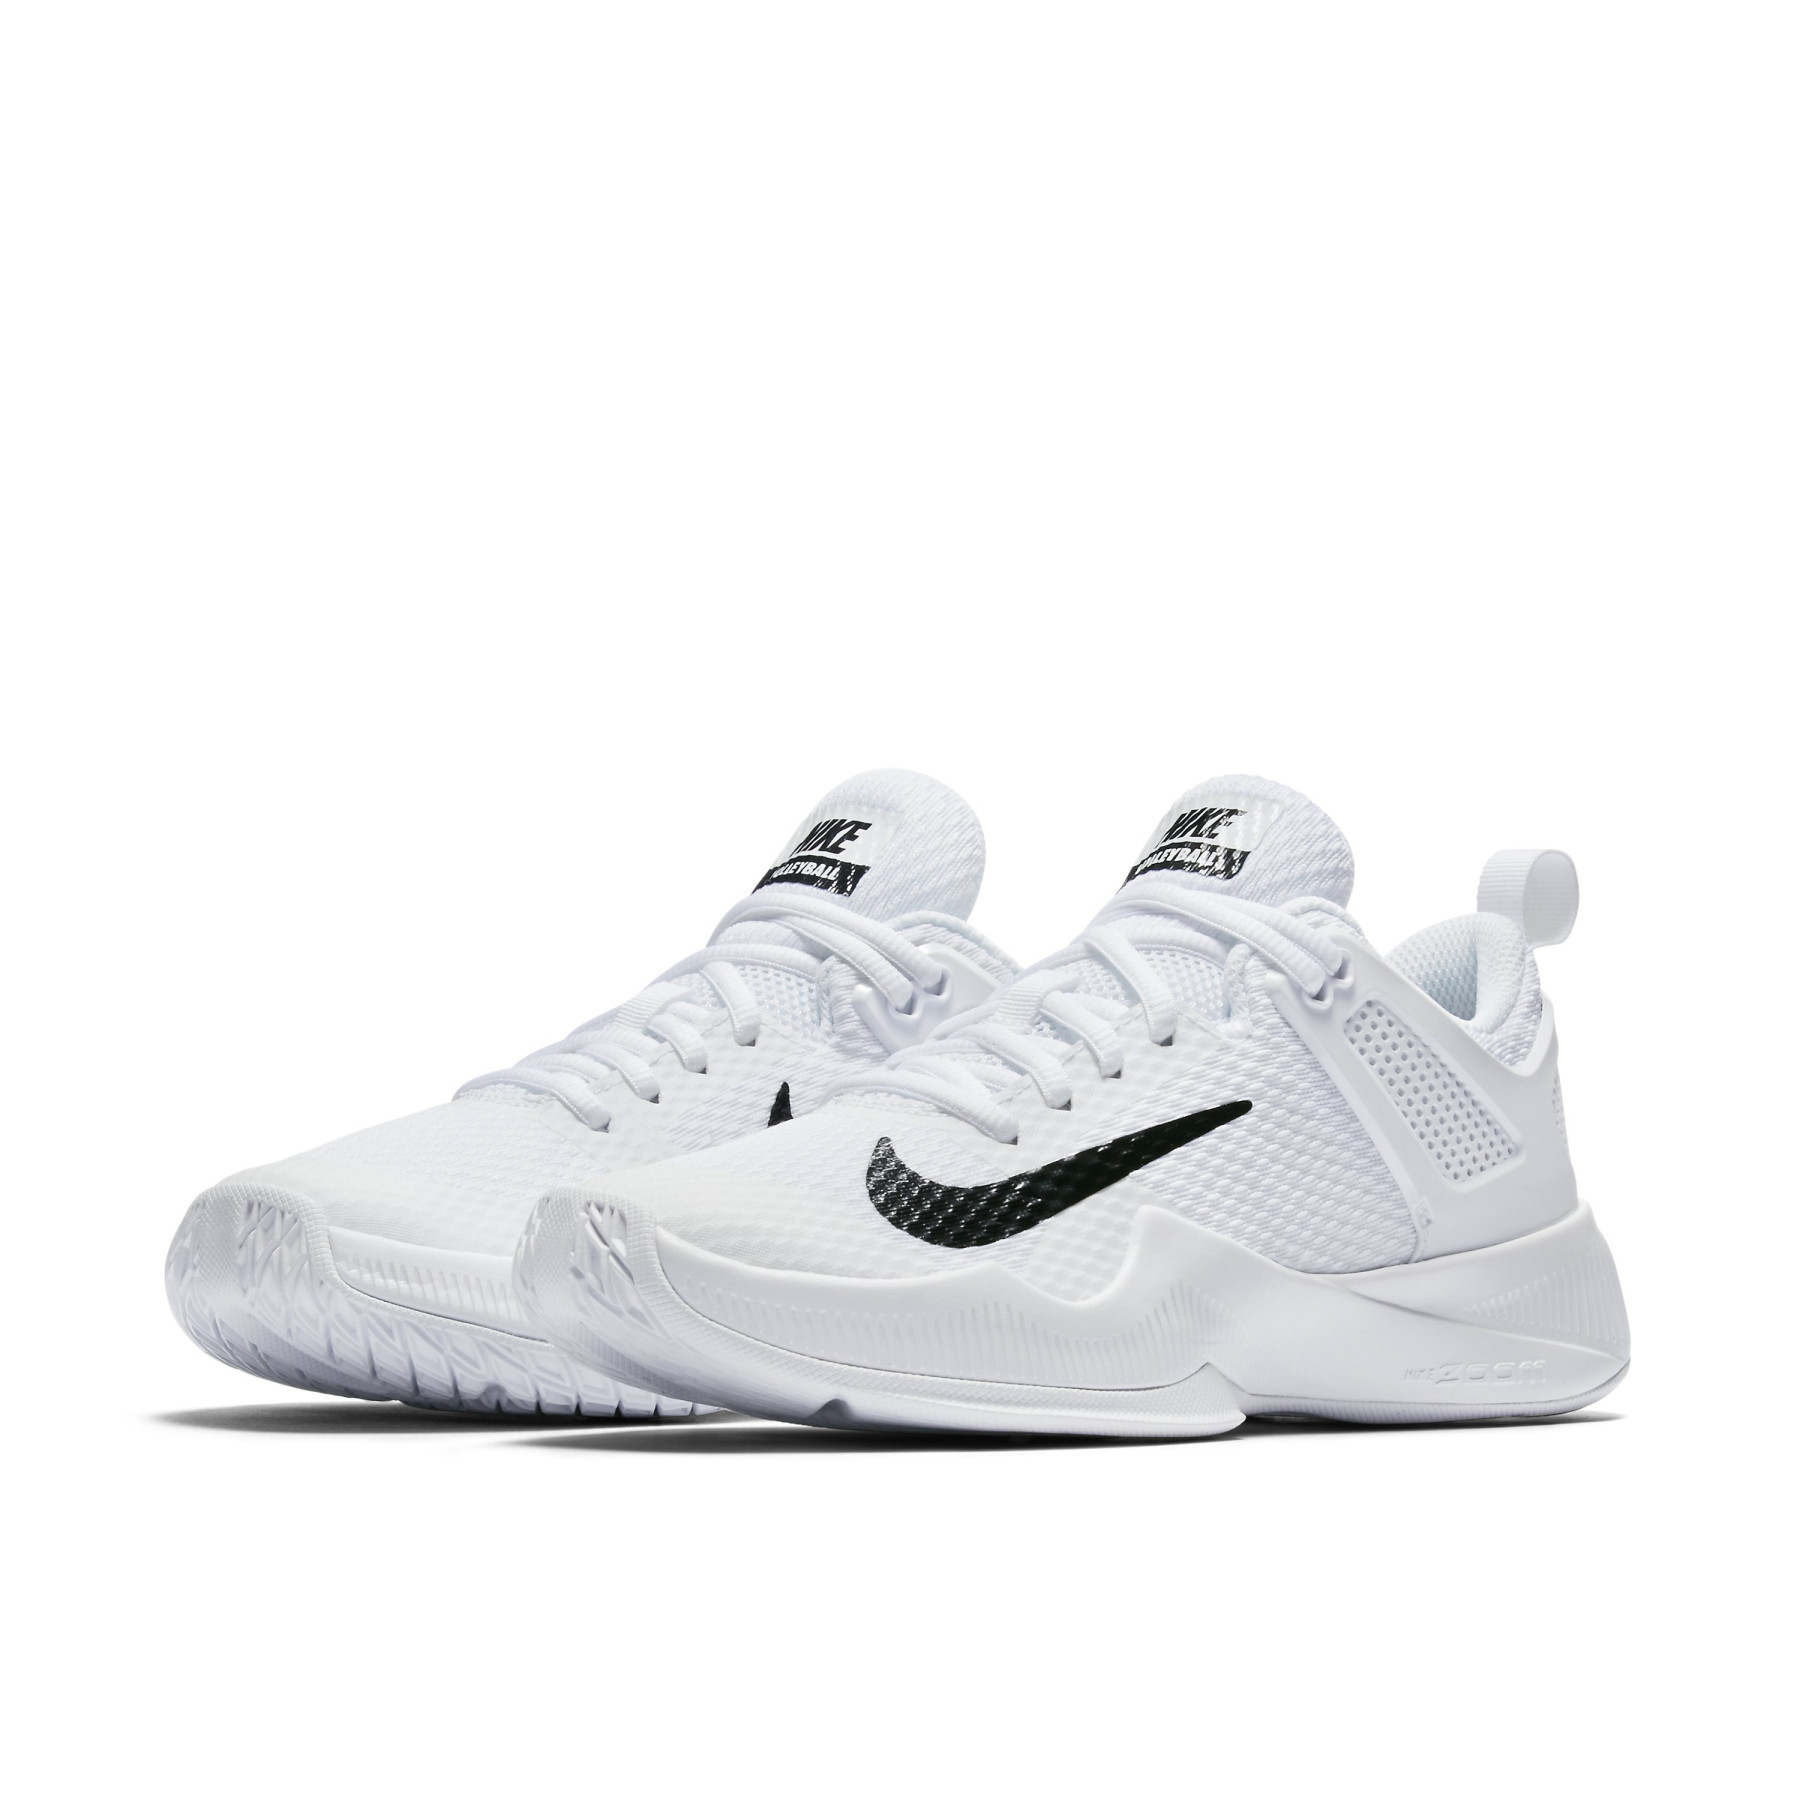 femme nike zoom chaussures nike com fr,Chaussure Nike Zoom 2K pour ...